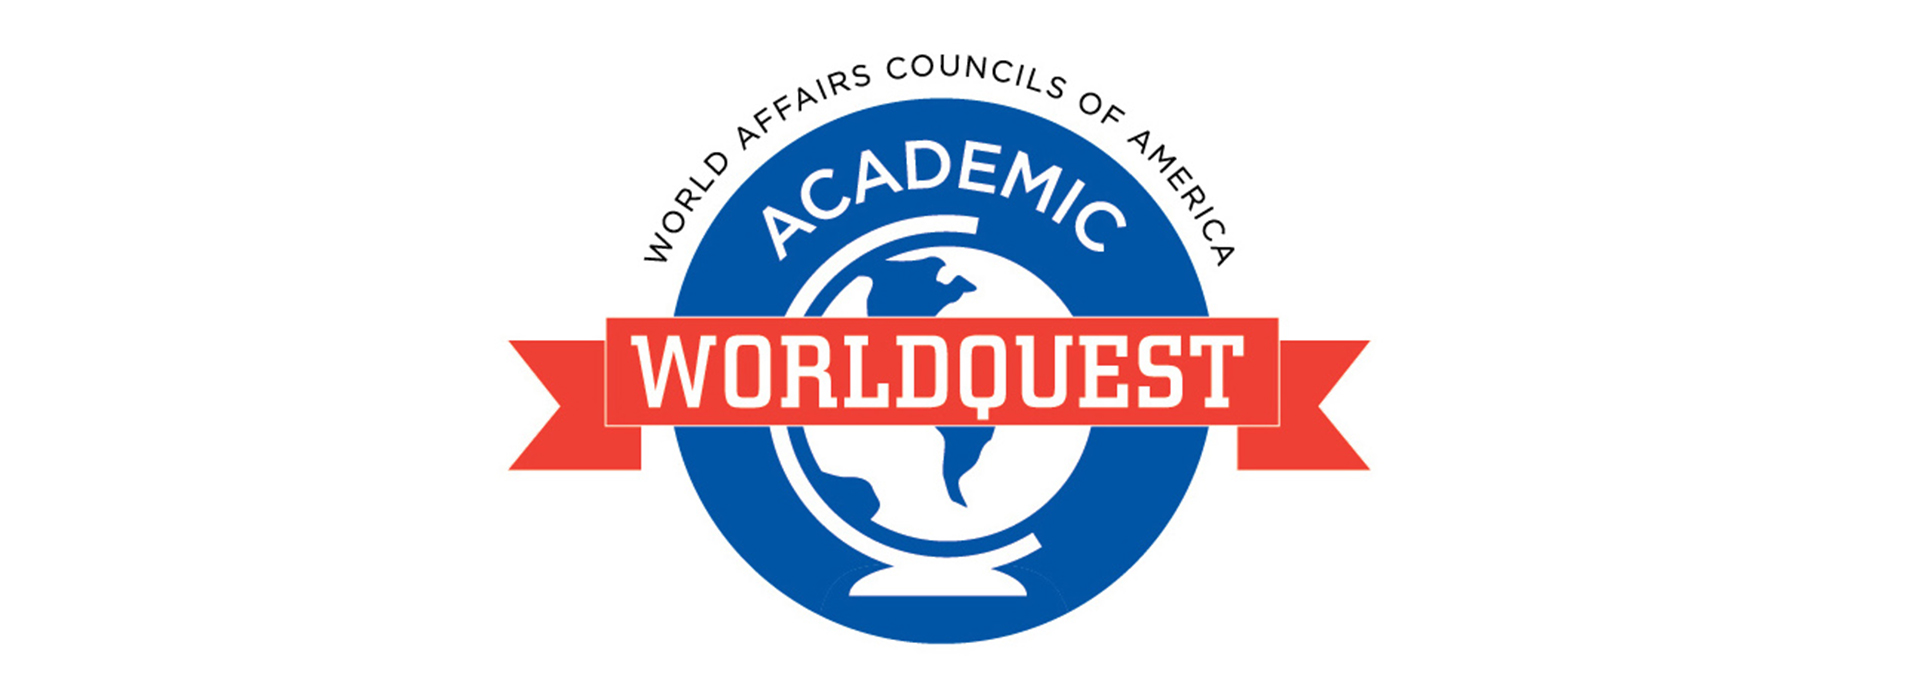 Palm Desert High School wins 13th annual Charles & Priscilla Porter Academic WorldQuest competition at CSUSB Palm Desert Campus